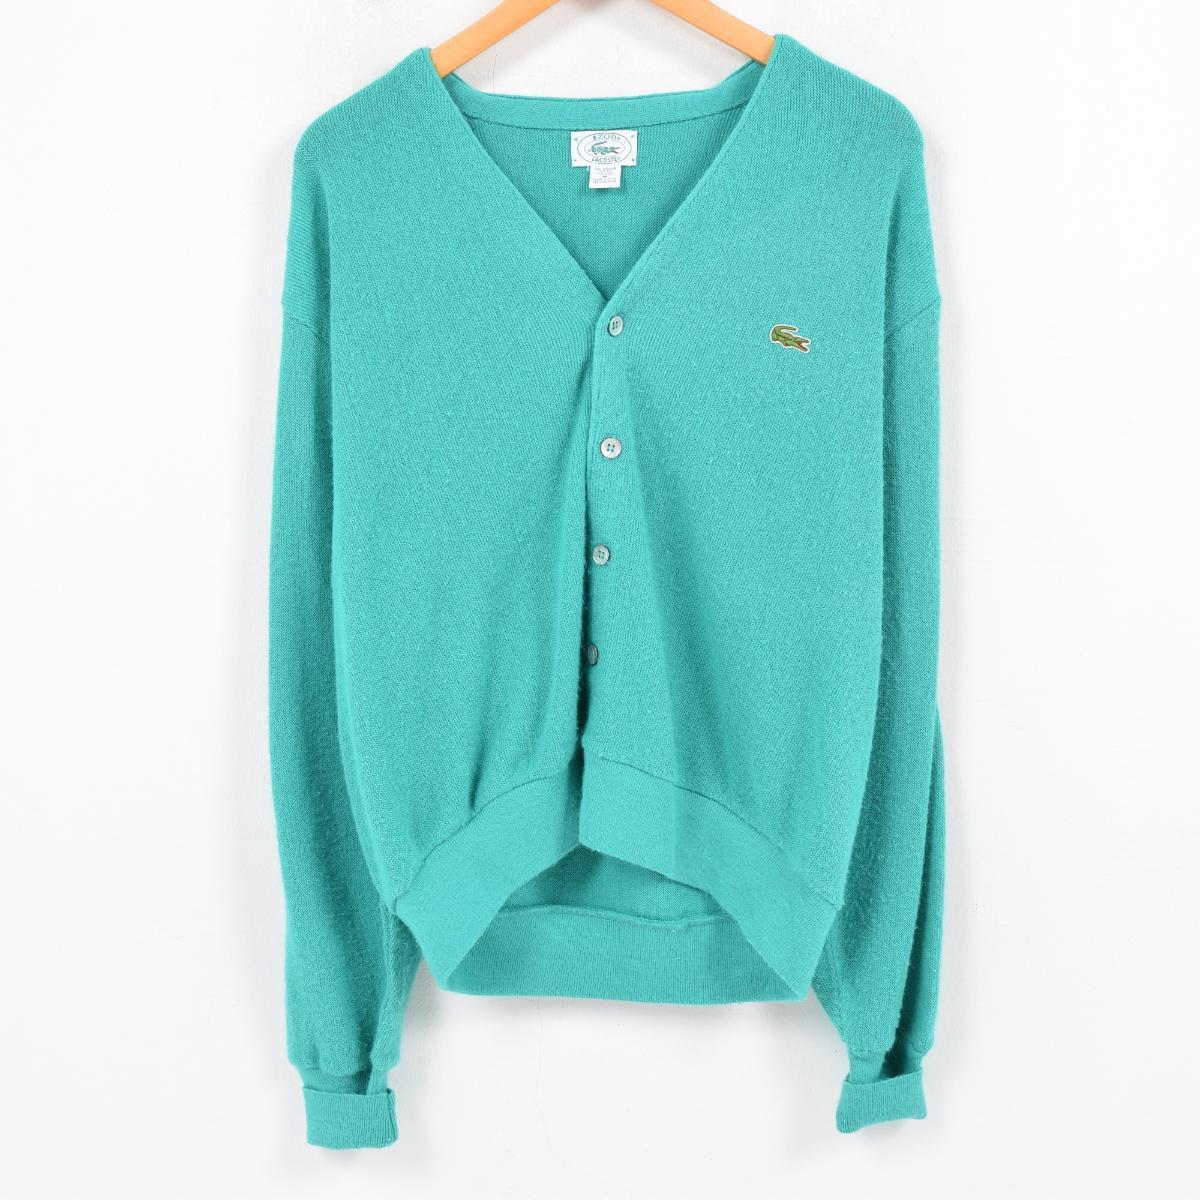 bb5ddd1fb Men L vintage  wao3616 in the 80s made in Lacoste LACOSTE IZOD acrylic knit  cardigan USA